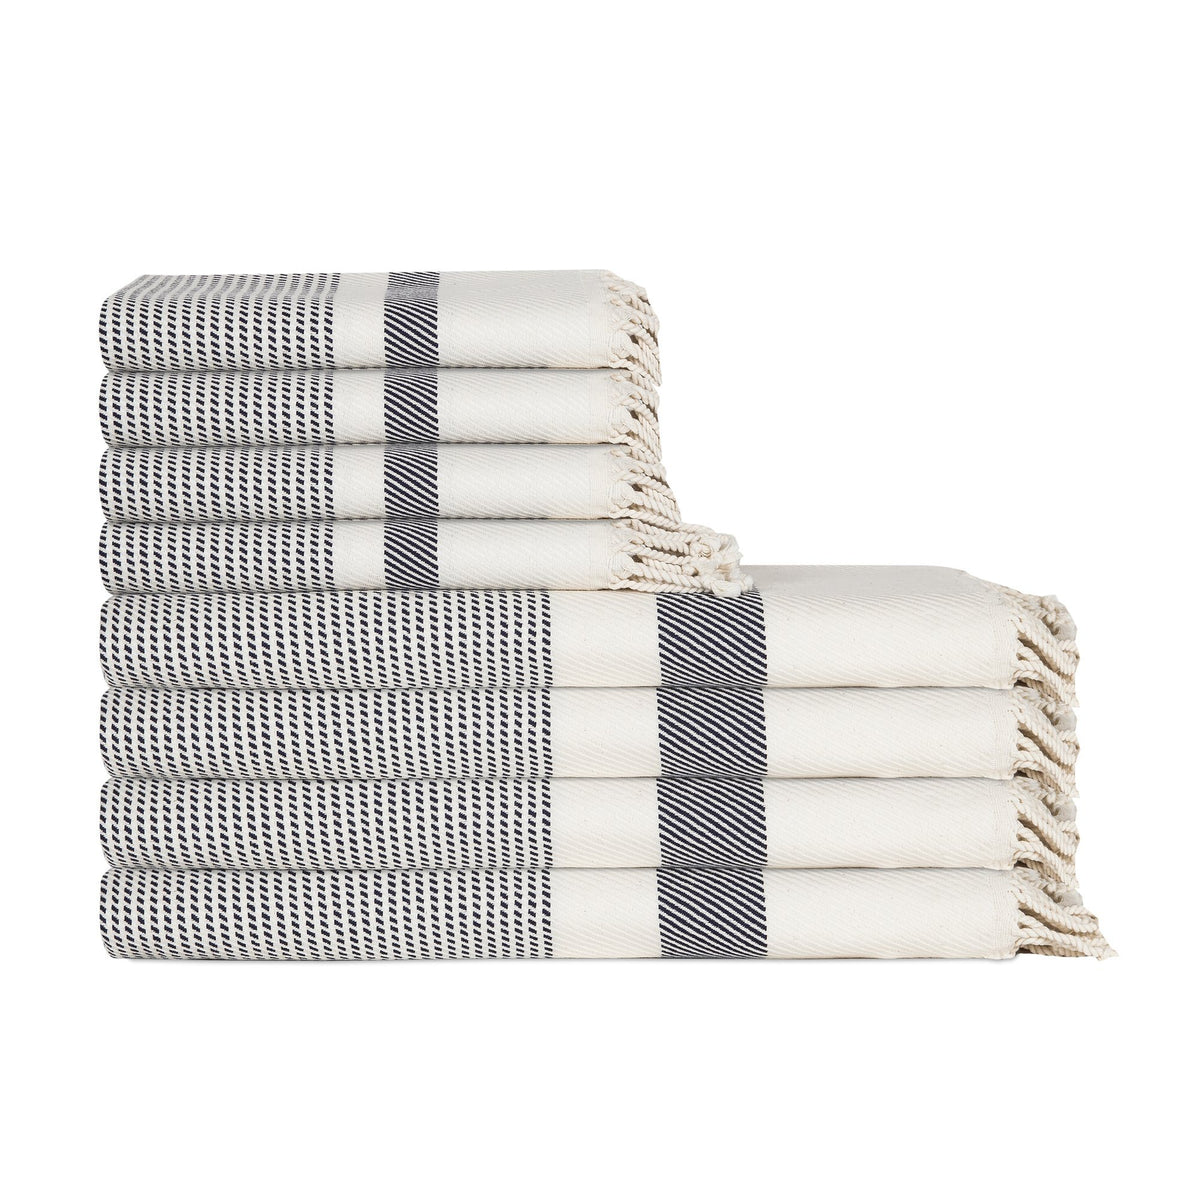 Pixel Turkish Towel Bundle